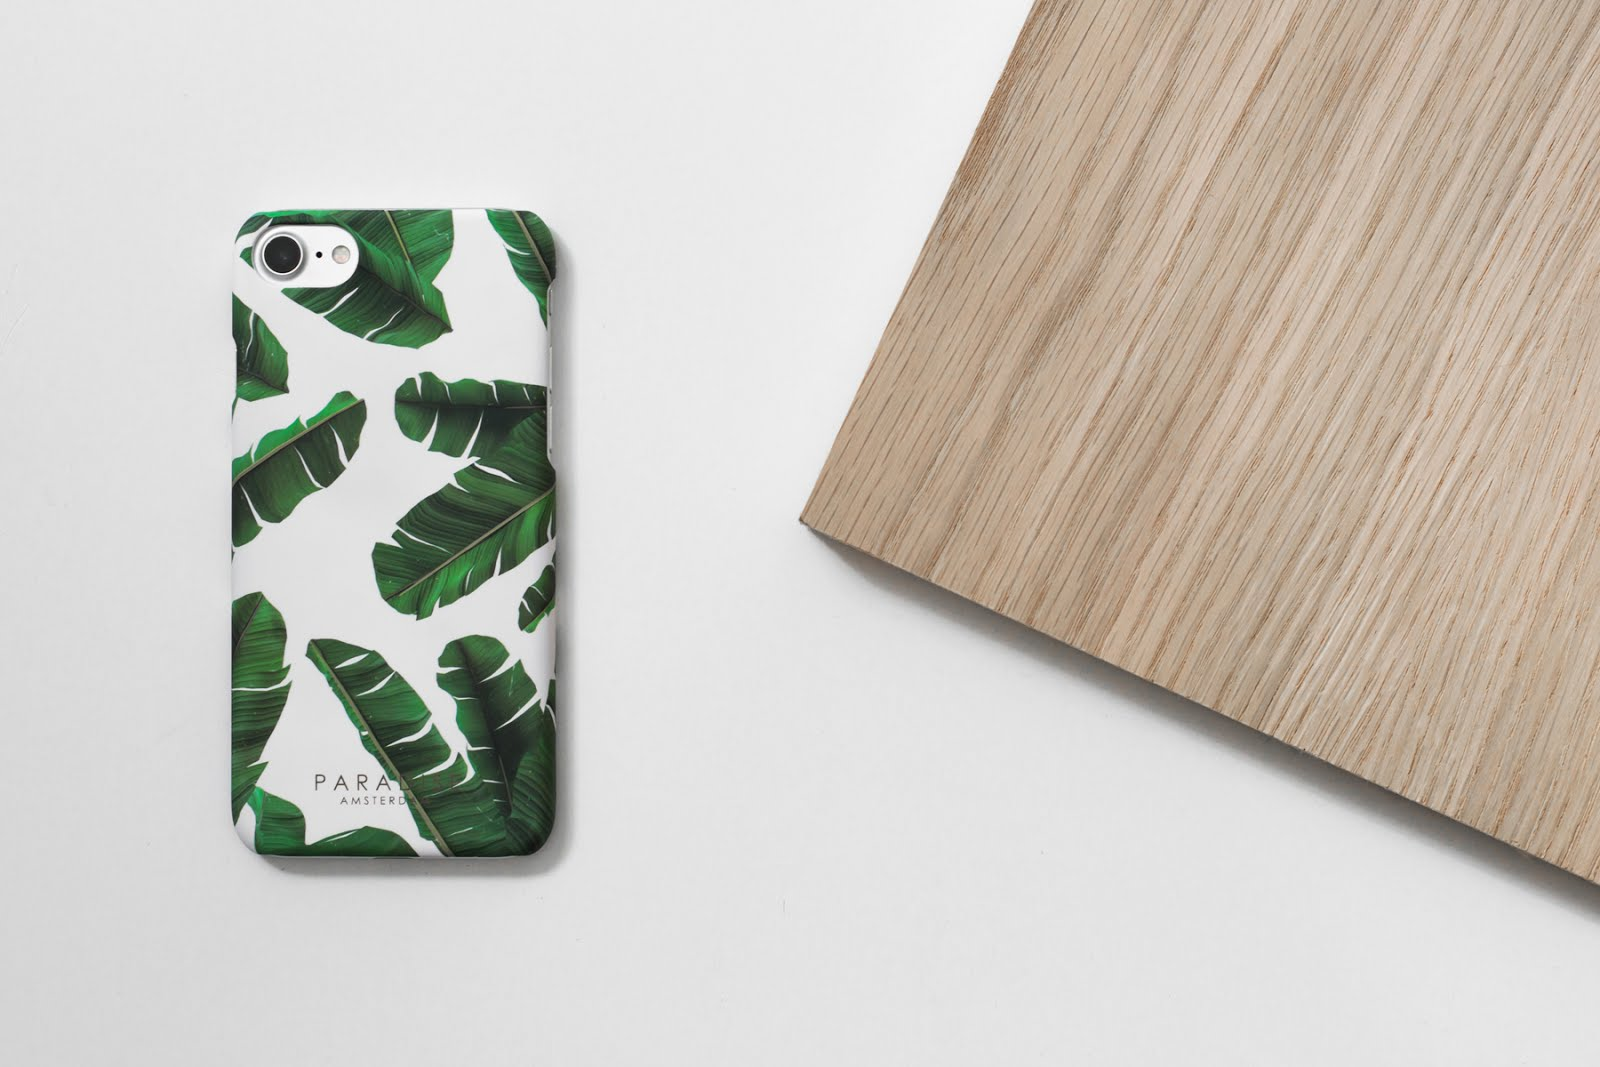 Paradise amsterdam, iphone 7 case, island leaves, tropical